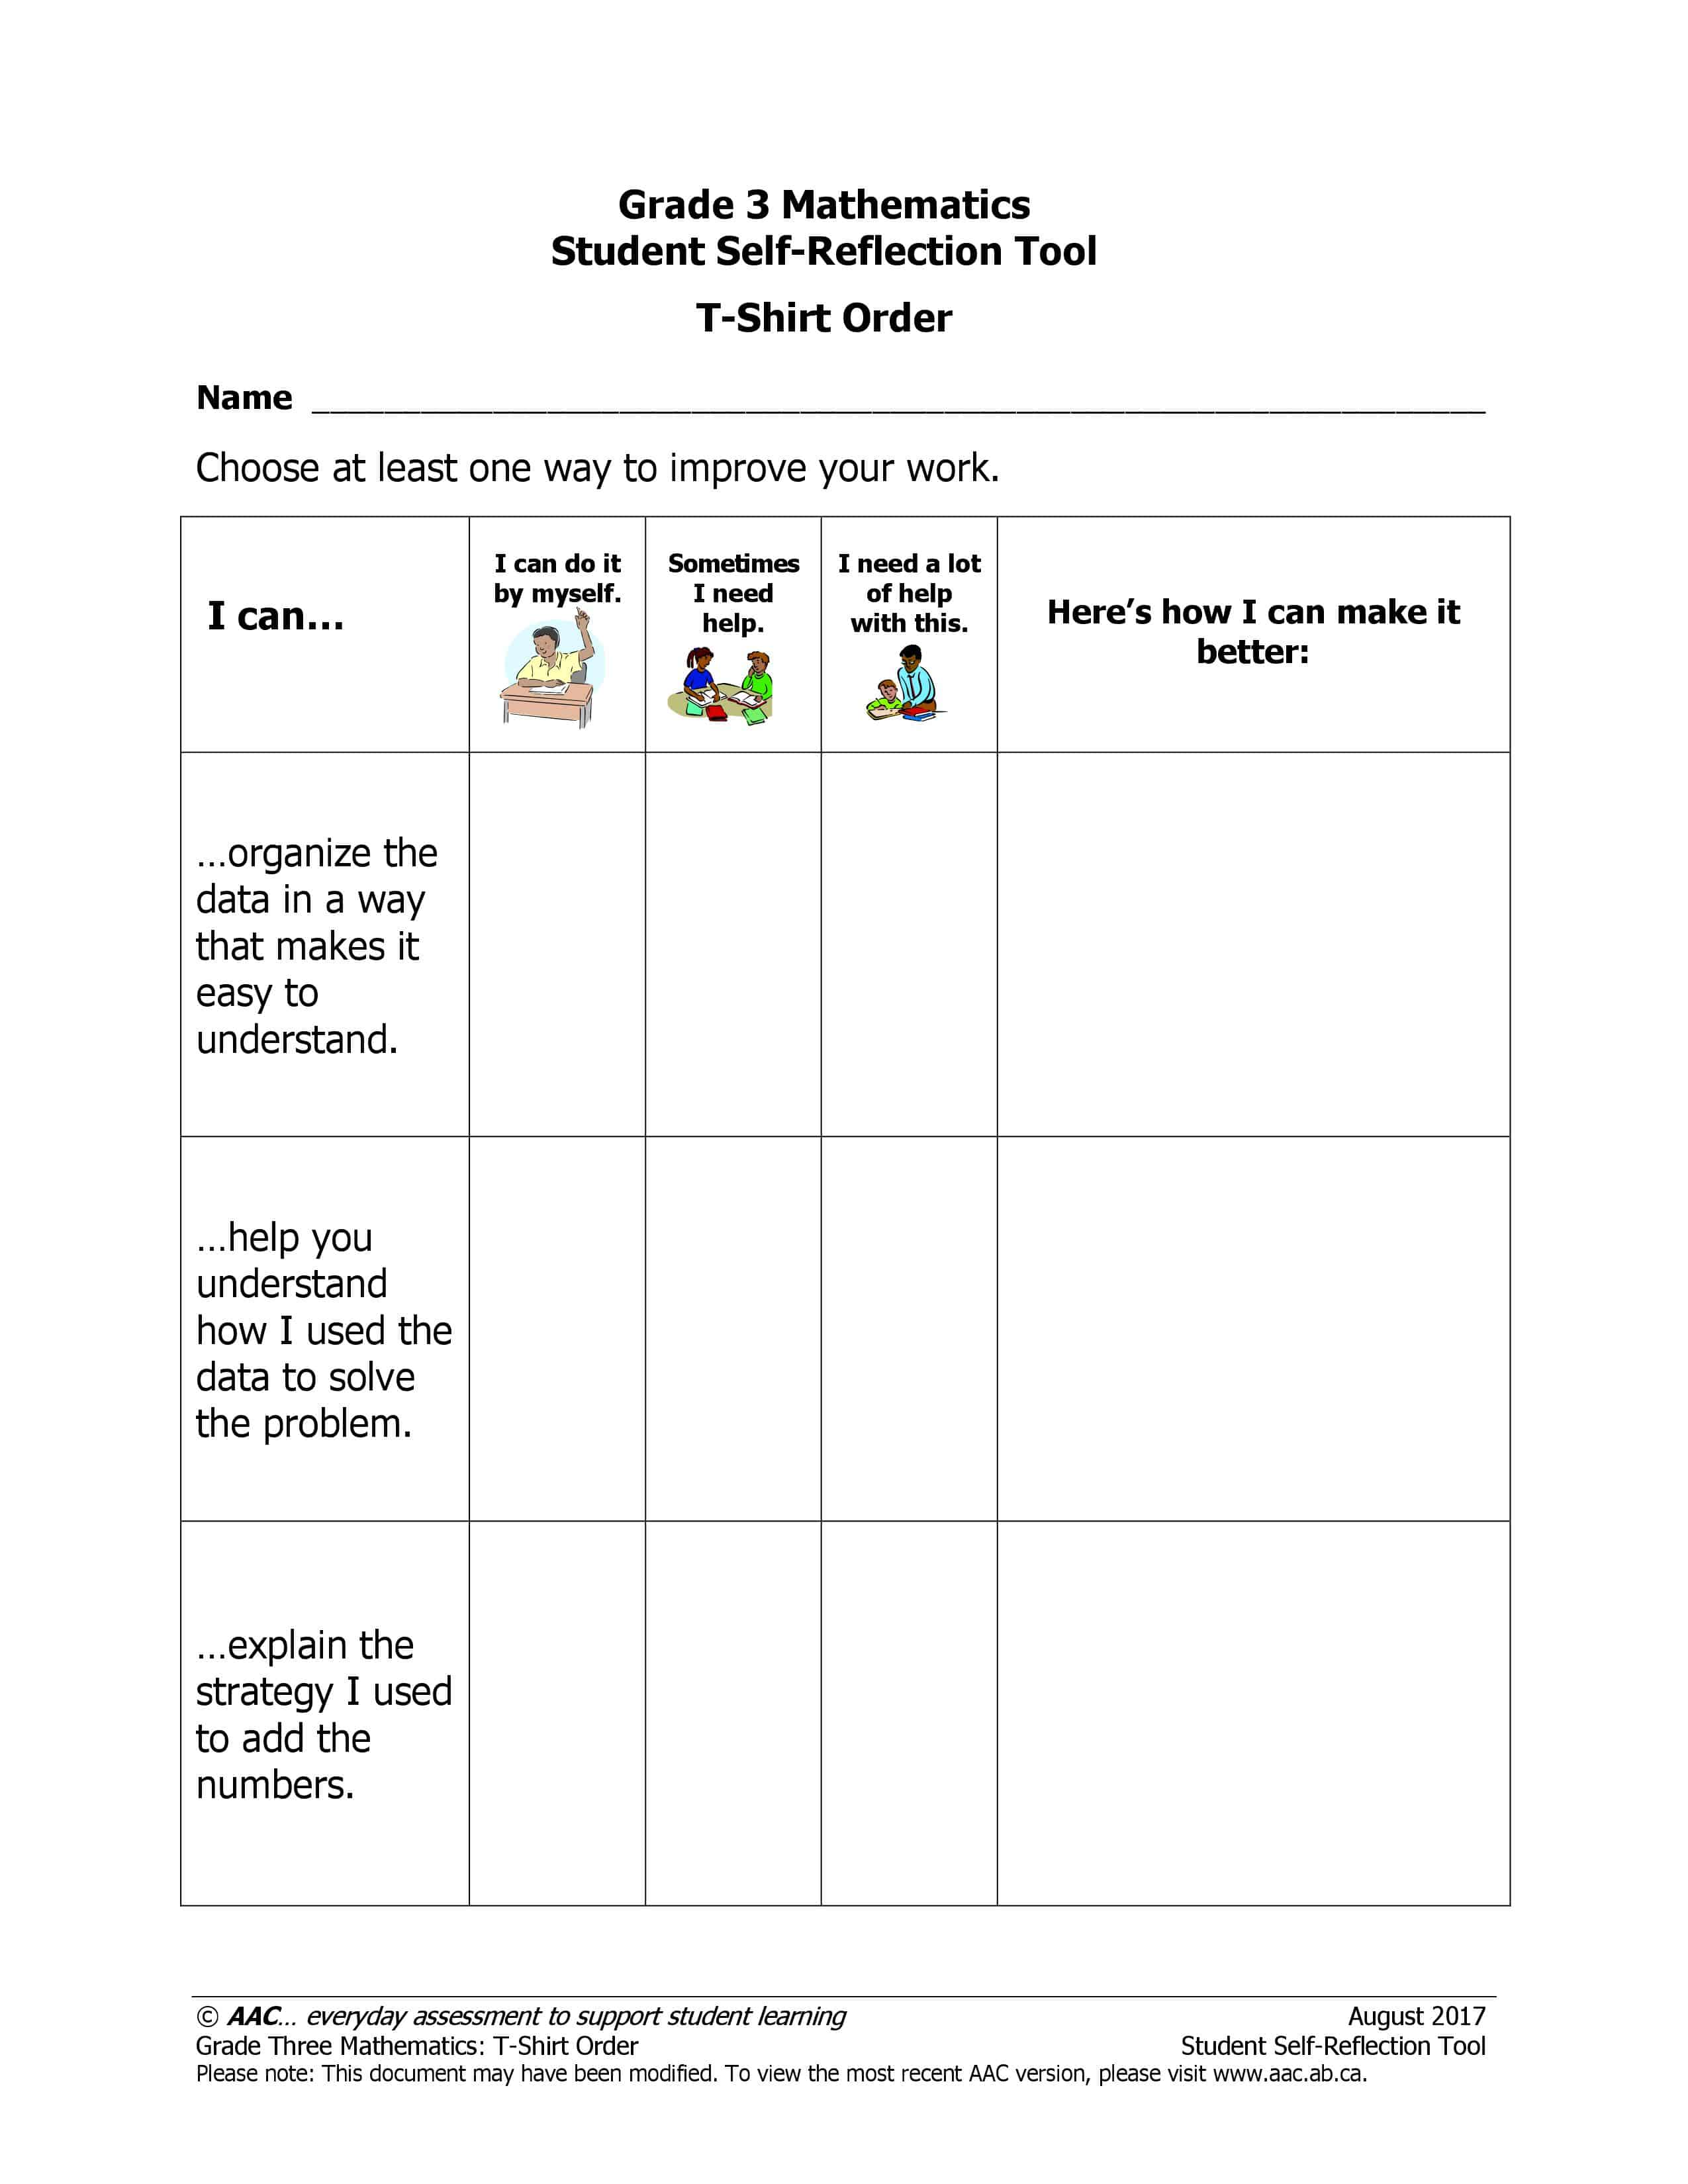 The T-Shirt Order (Grade 3) - Alberta Assessment Consortium